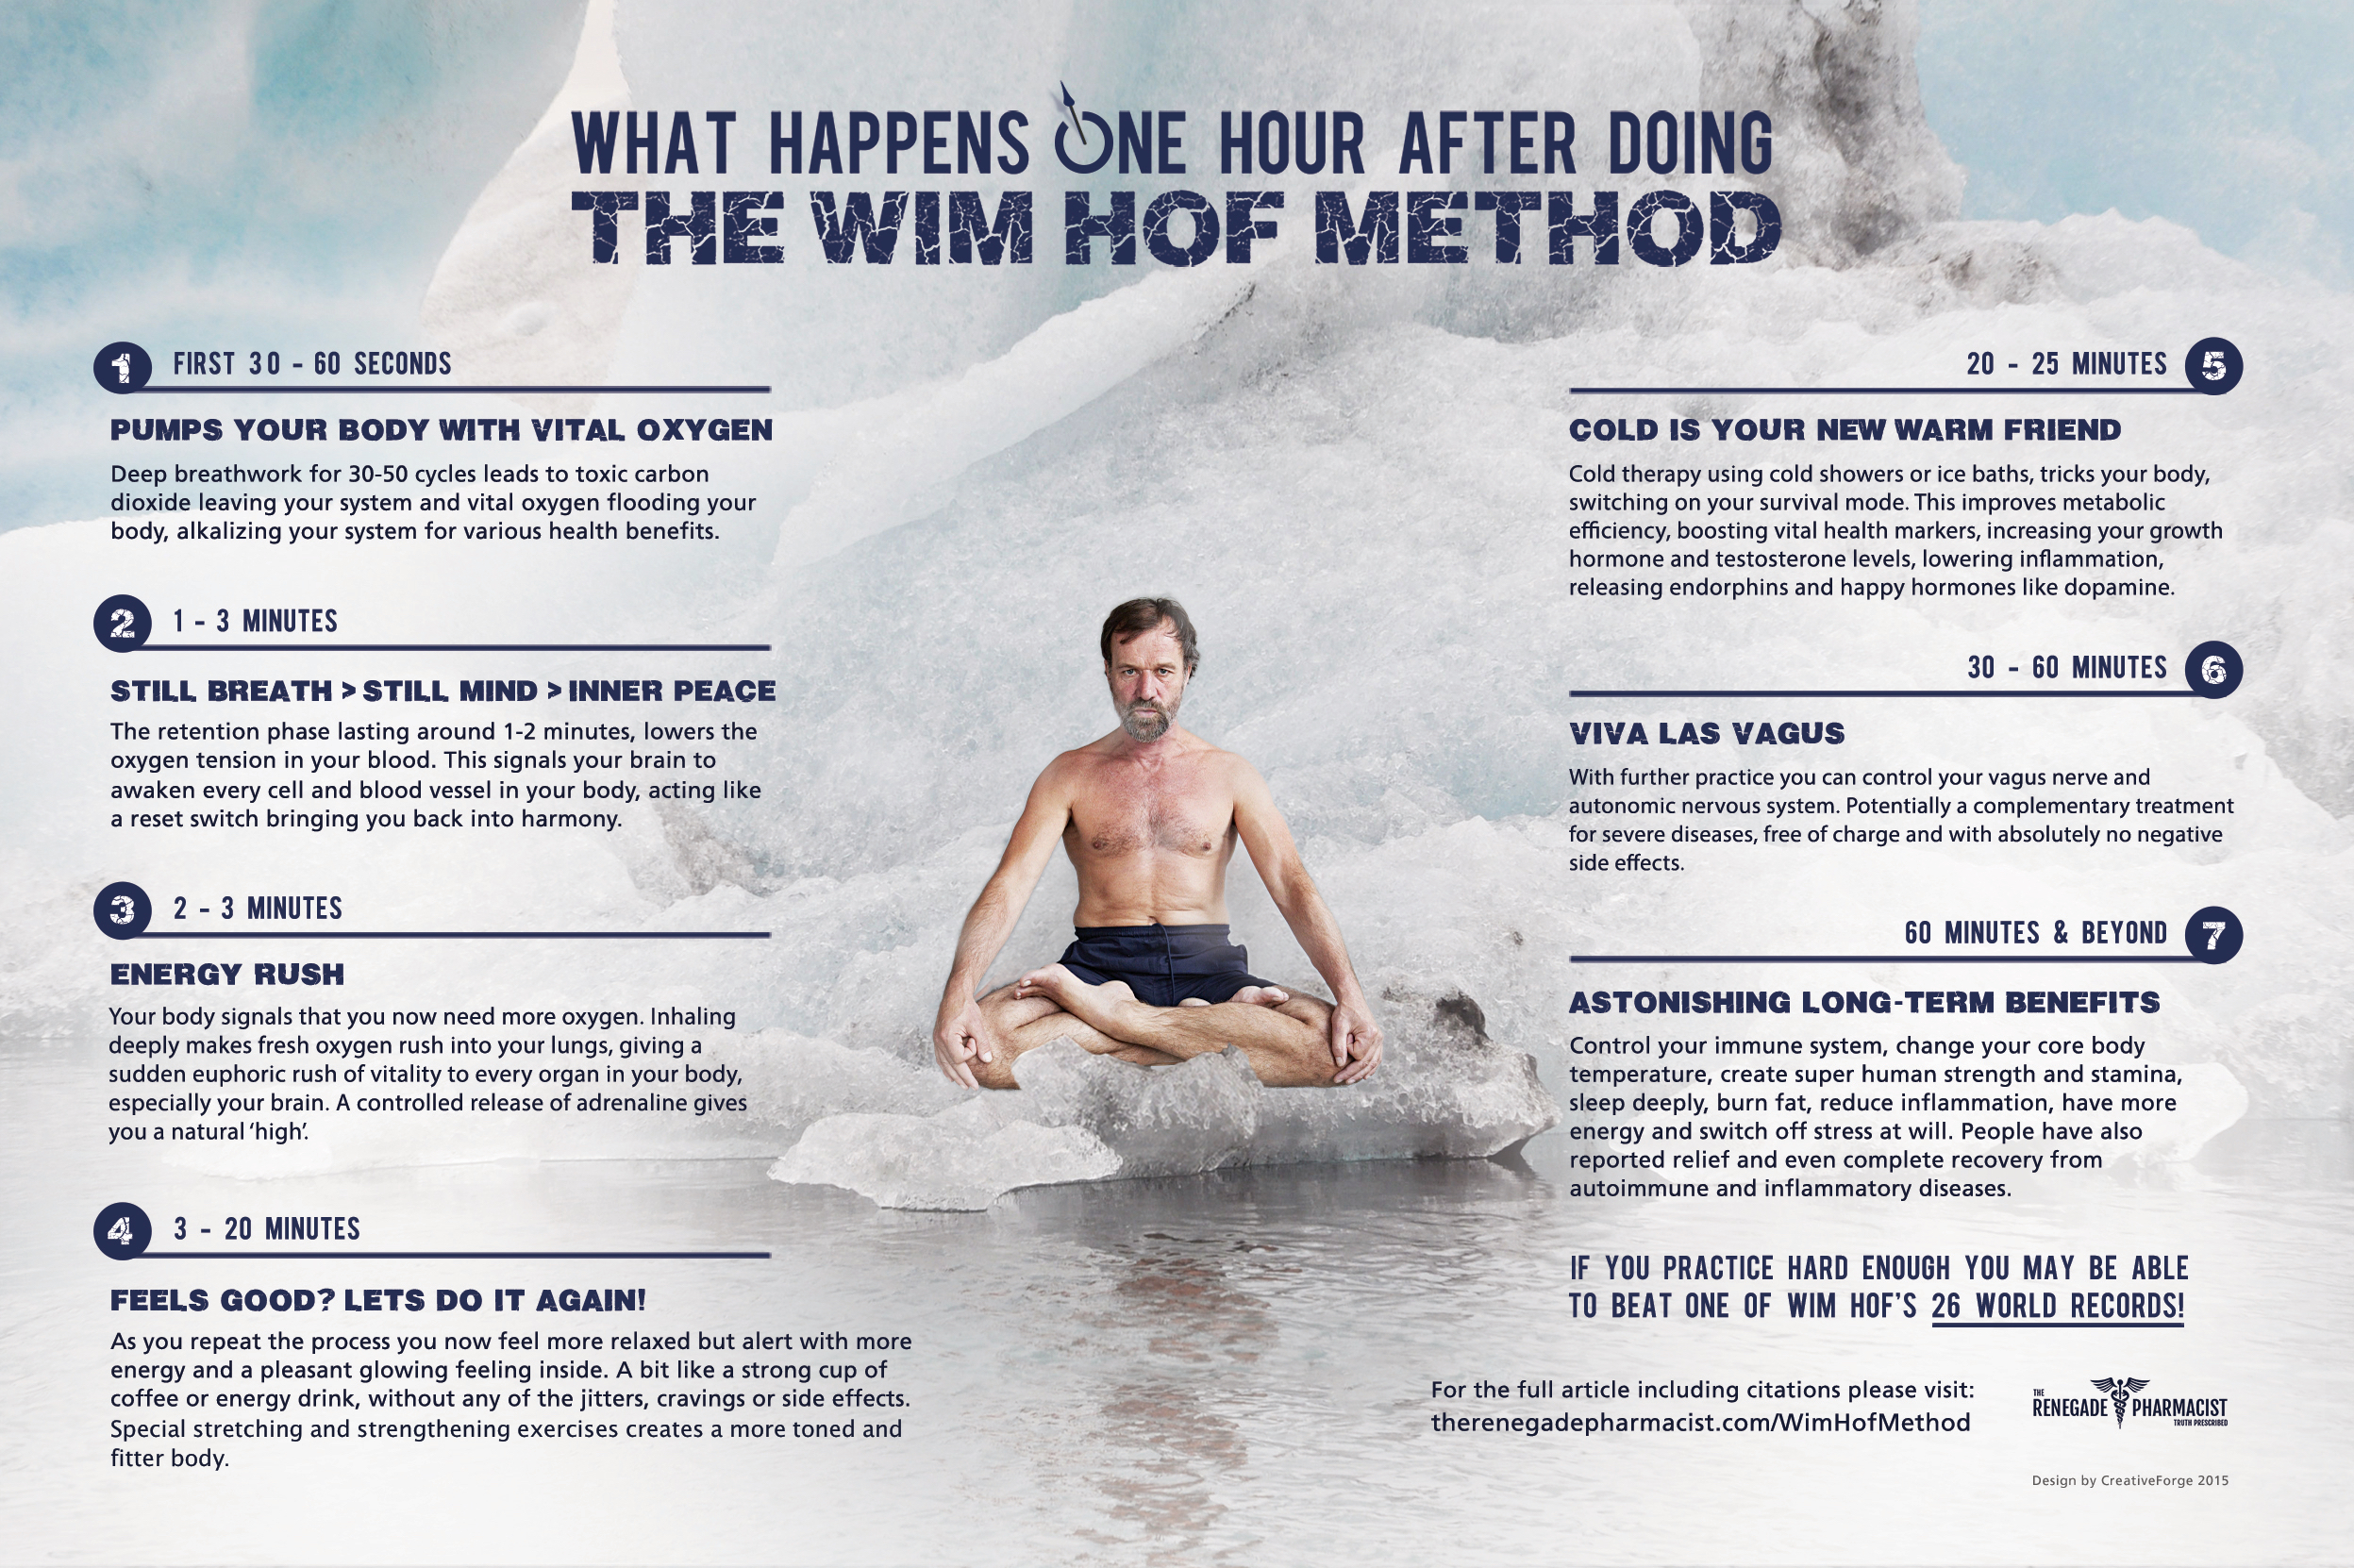 [Image: wim-hof-method-1-hour-after-1.jpg]